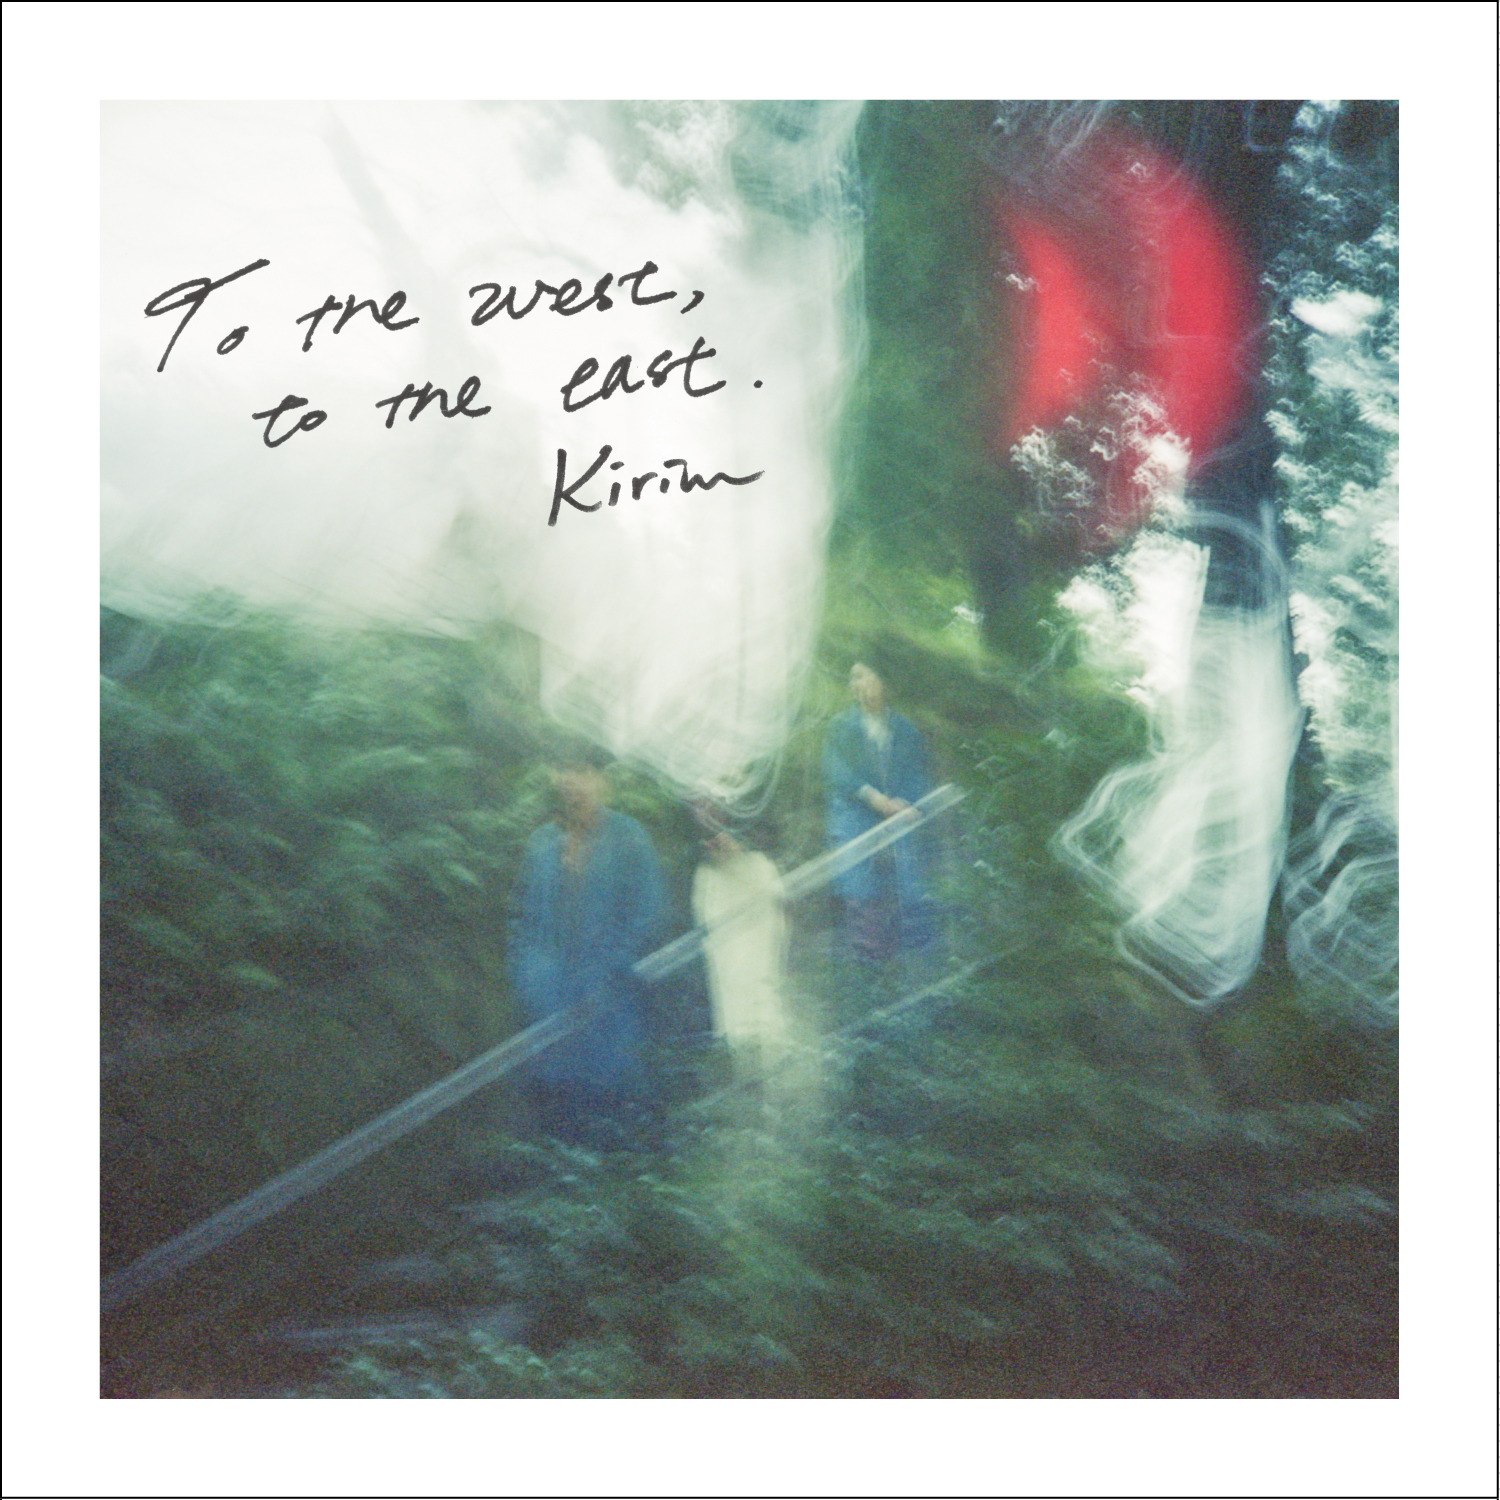 kirimの新作 to the west to the east がリリース決定 全曲試聴も